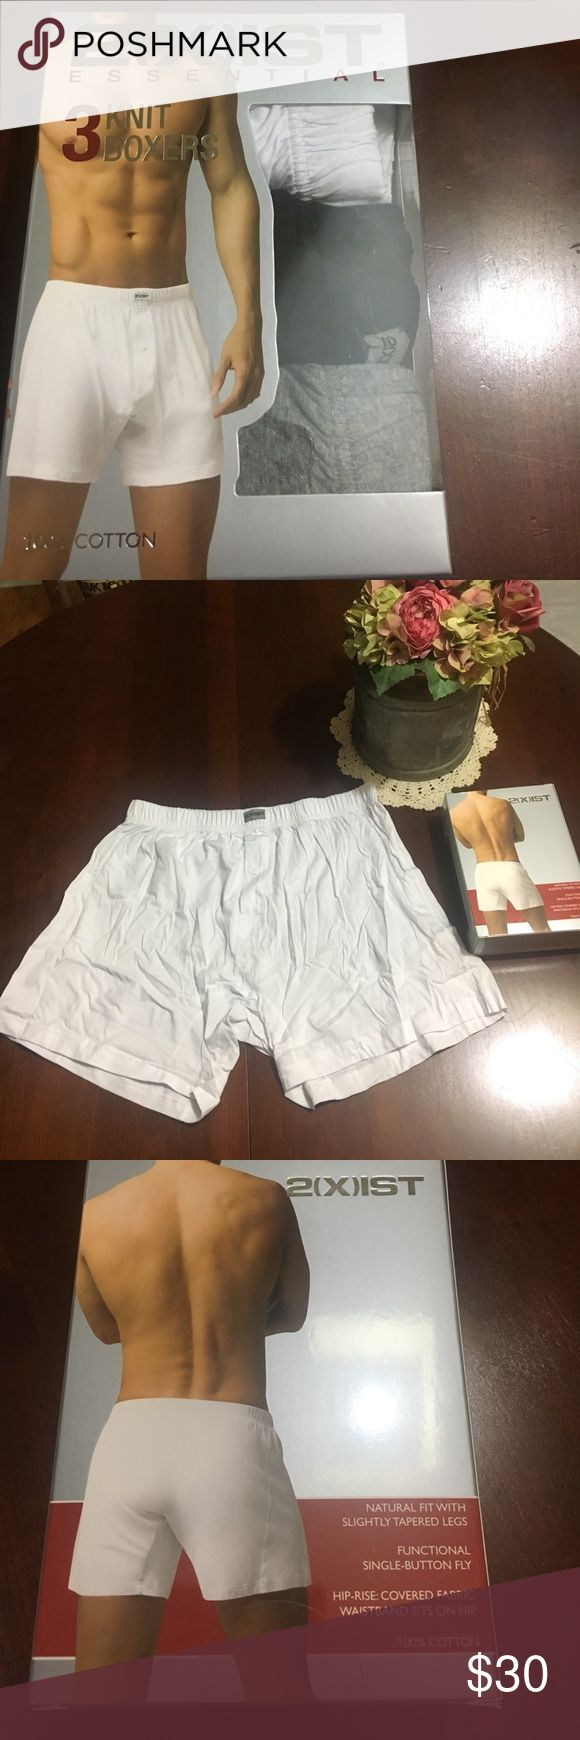 2xist 3pack Cotton Knit Boxers NWOT My husband loves these because it has cotton over the elastic band. The only boxers he will wear! 2xist Underwear & Socks